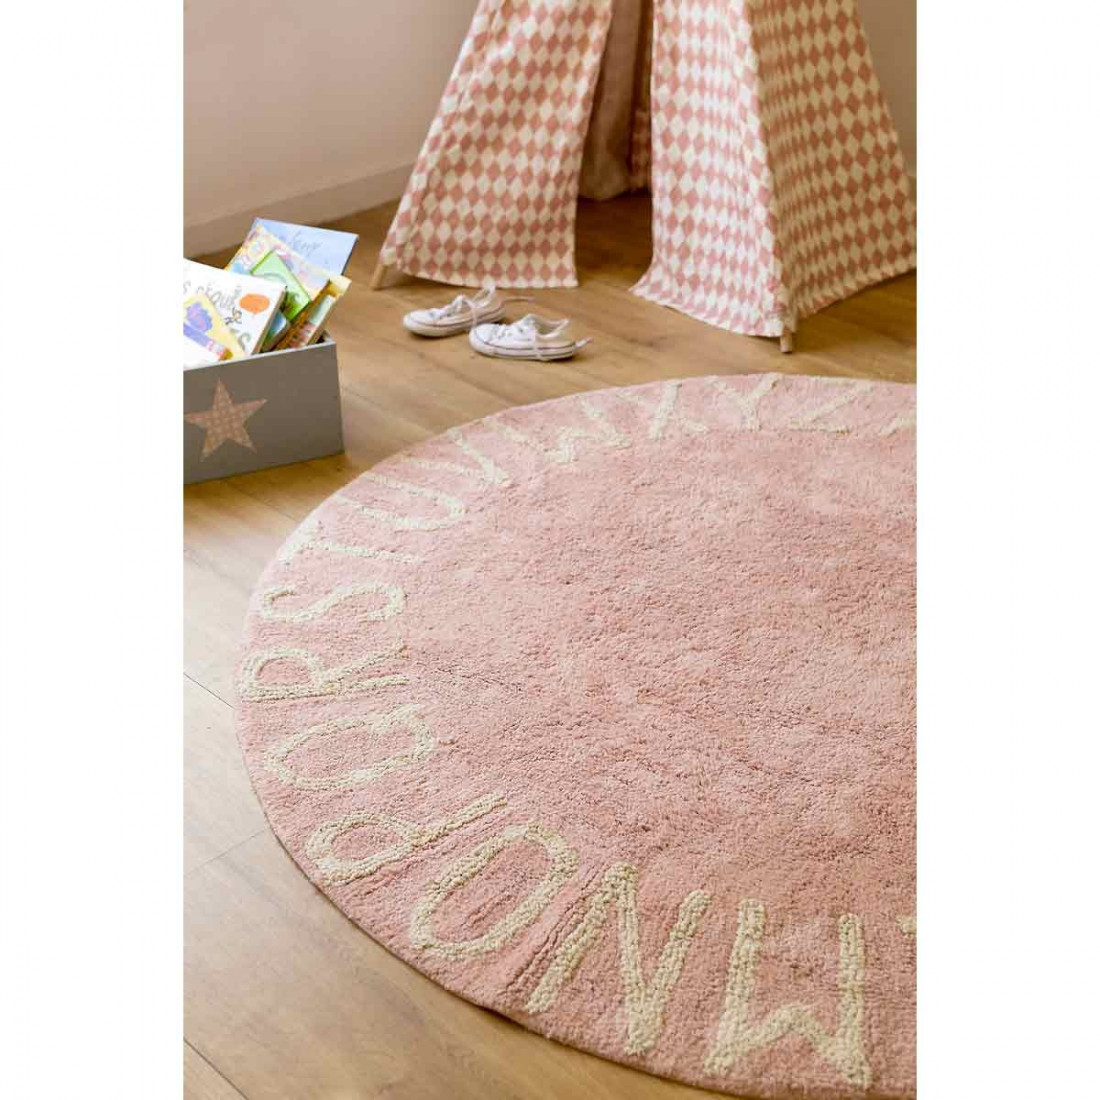 tapis enfant coton lavable rond rose alphabet blanc lorena canals ma chambramoi. Black Bedroom Furniture Sets. Home Design Ideas